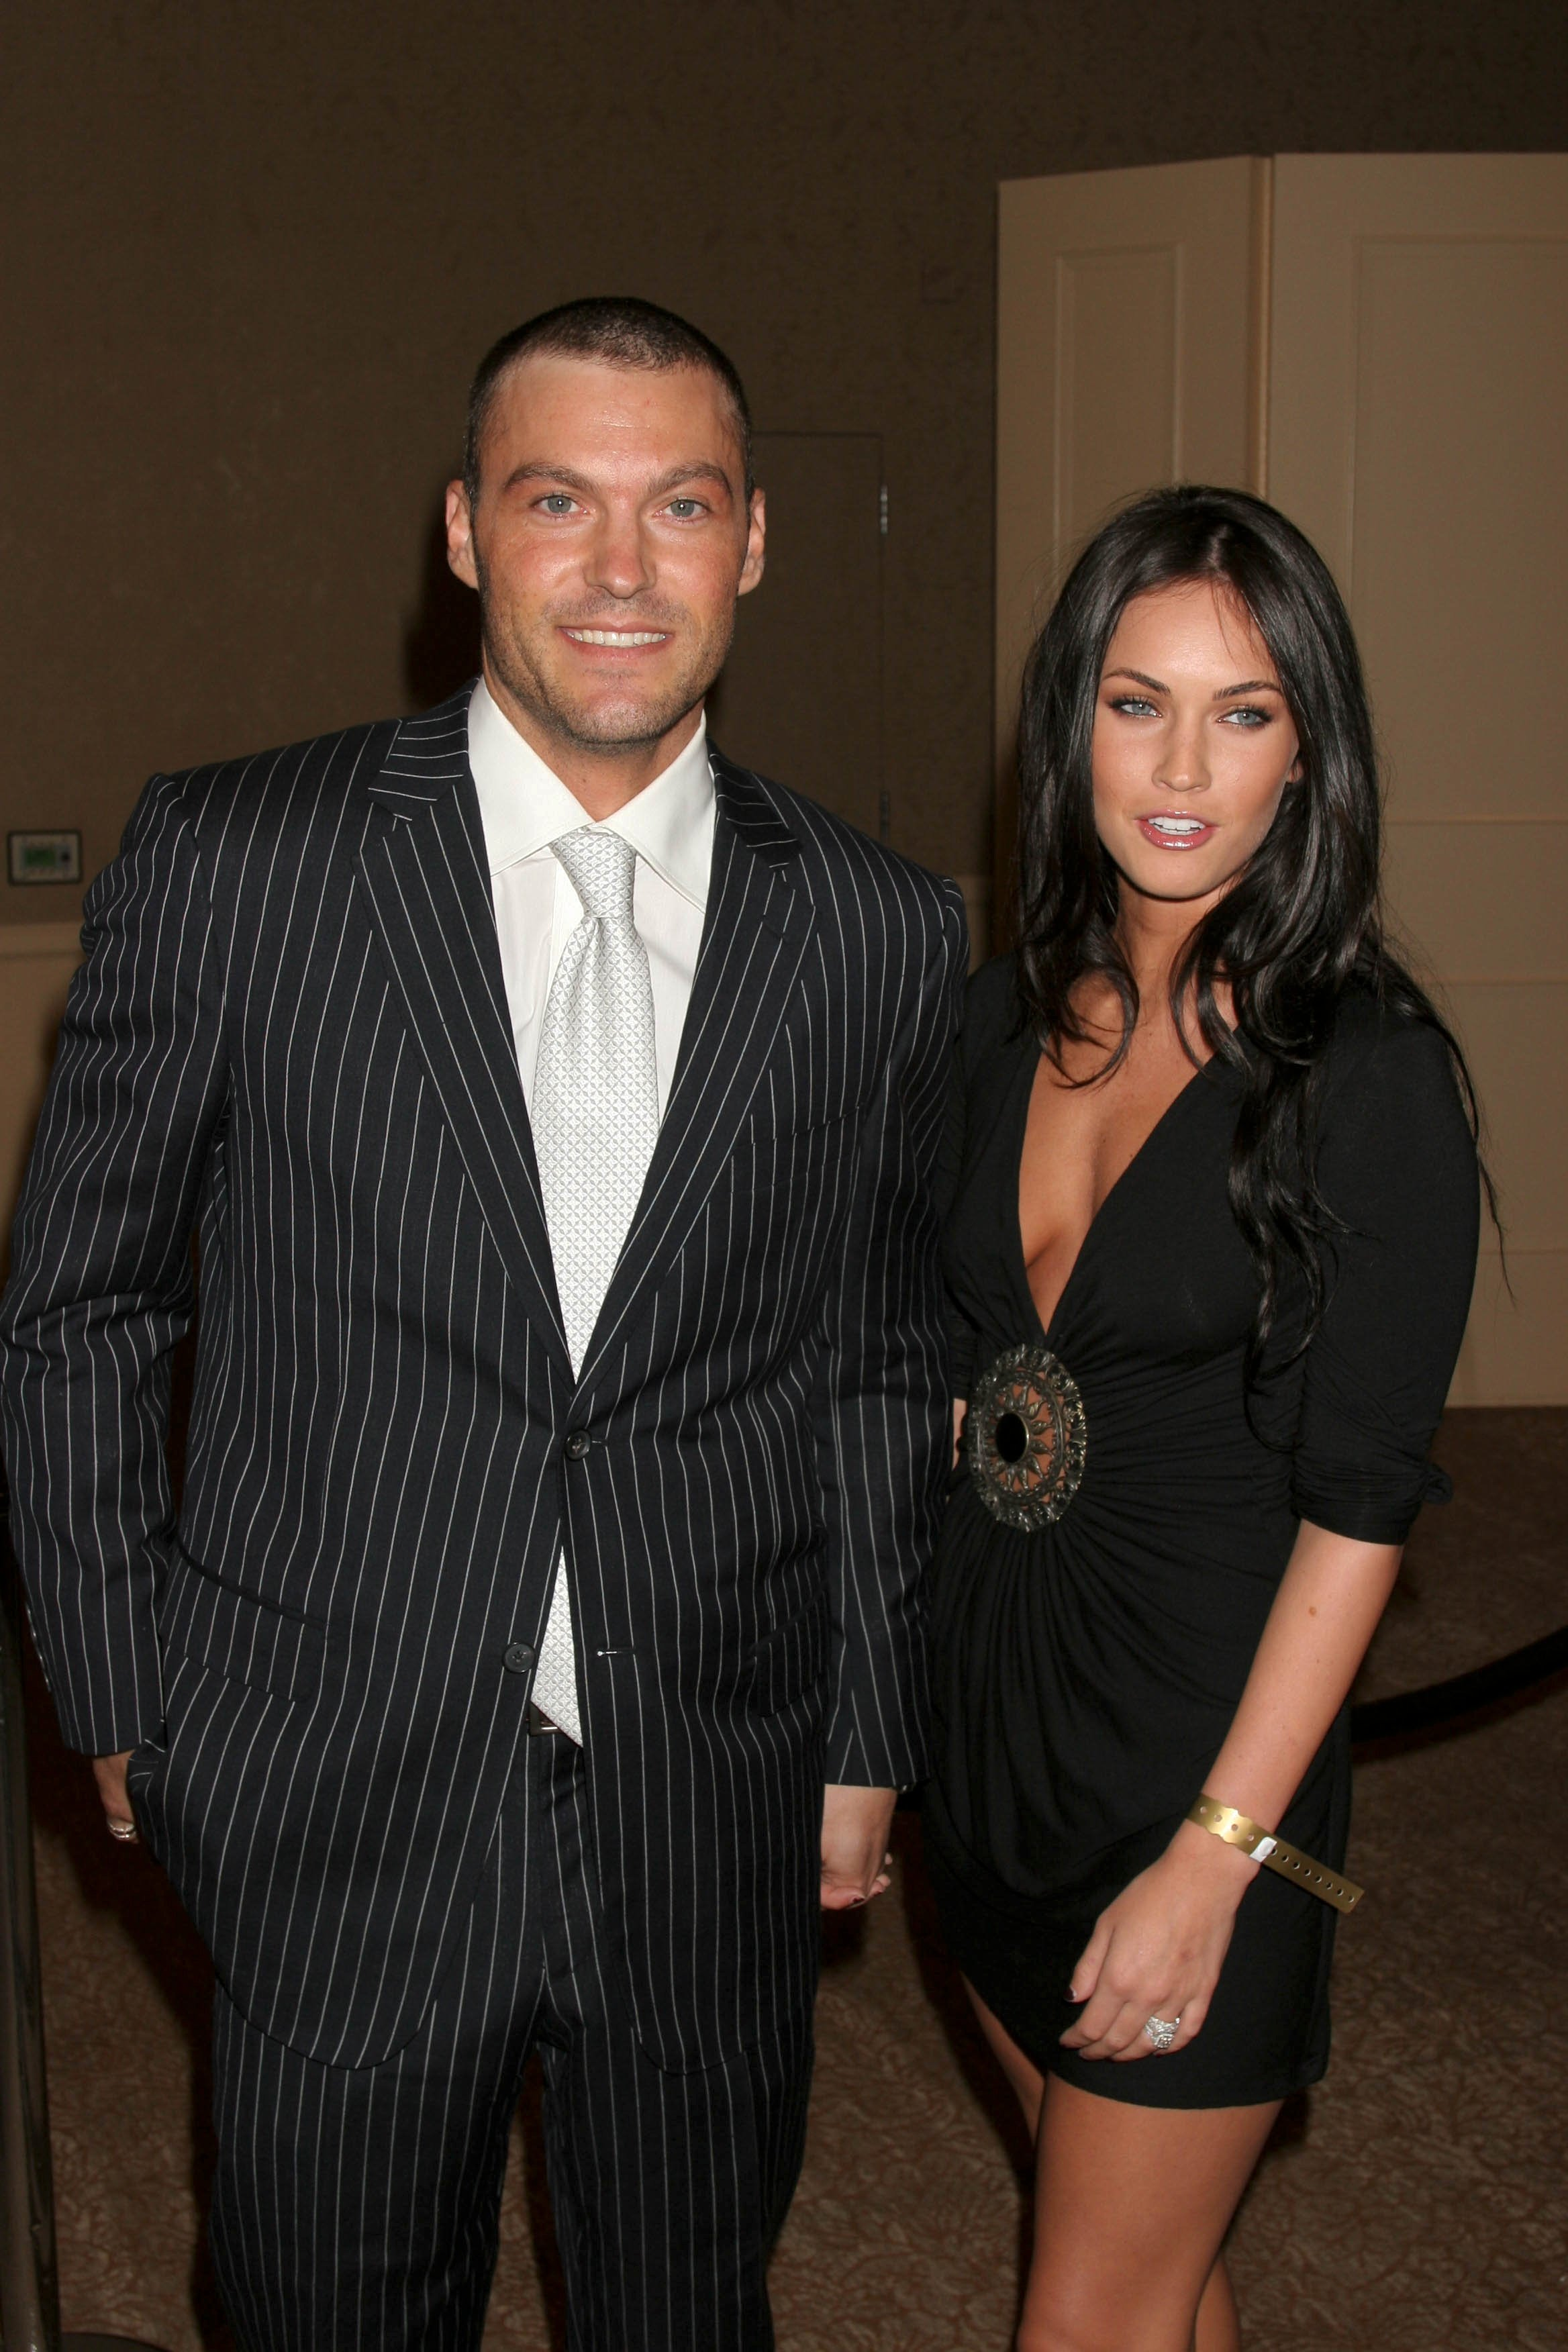 Brian Austin Green and Megan FoxBeverly Hills 90210 and Melrose Place DVD Launch, Beverly Hills, California, America - 03 Nov 2006